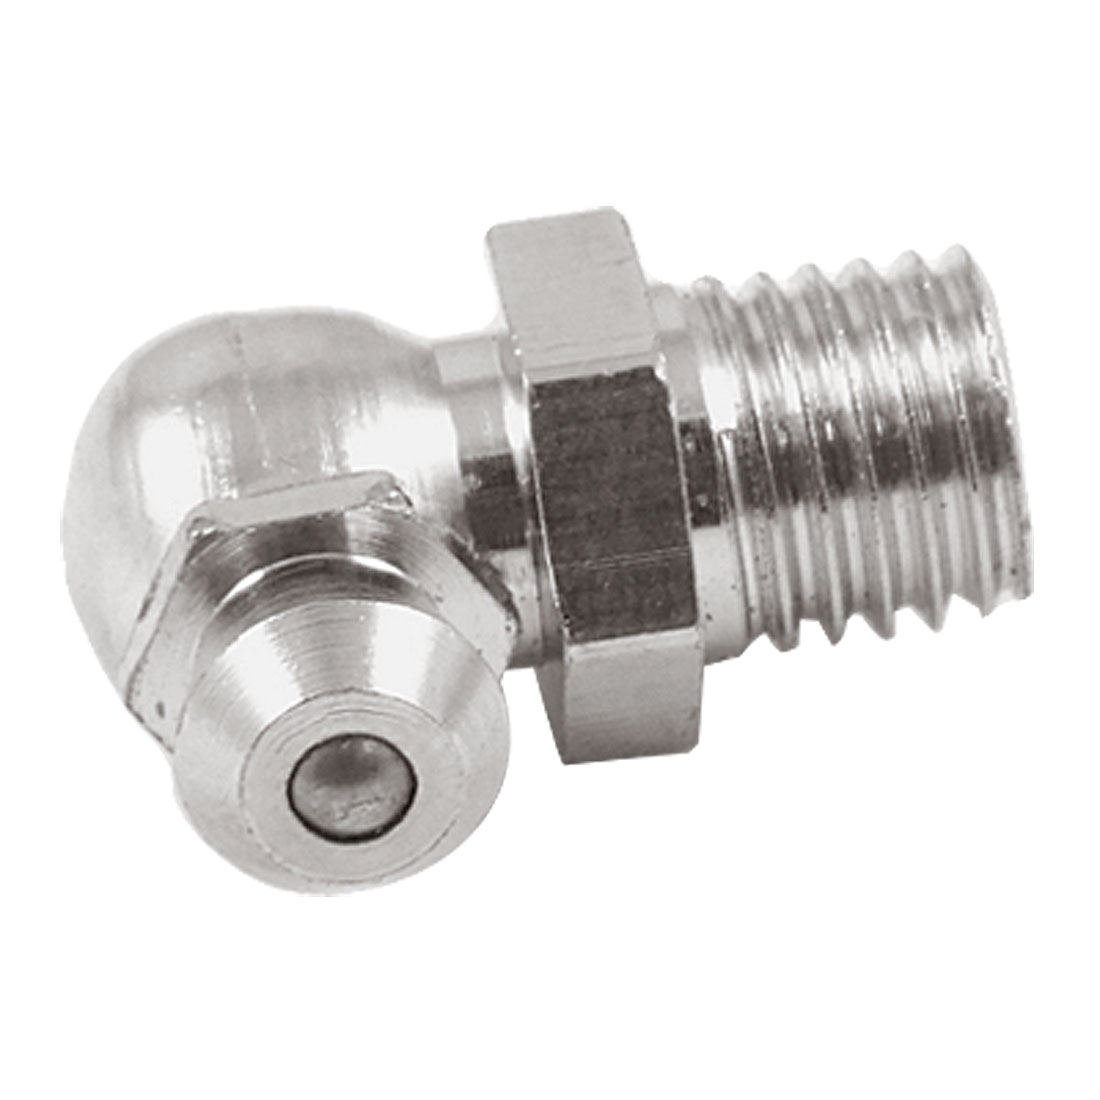 X Autohaux 8Mm M8 Male Thread 90 Degree Angle Grease Nipple Zerk Fitting